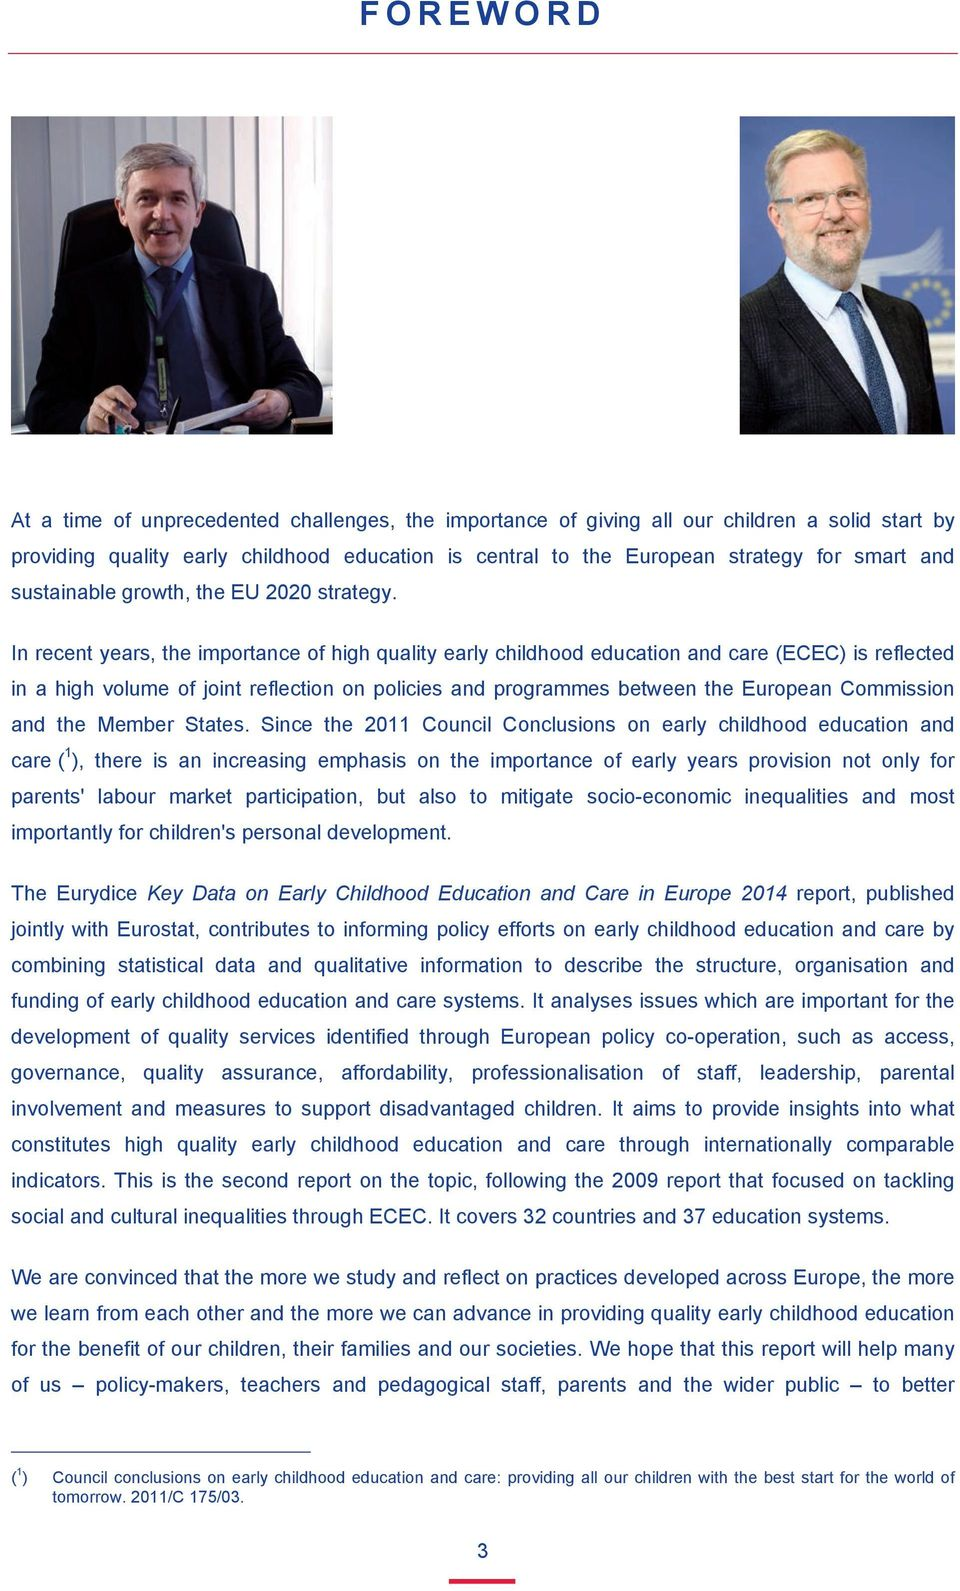 In recent years, the importance of high quality early childhood education and care (ECEC) is reflected in a high volume of joint reflection on policies and programmes between the European Commission